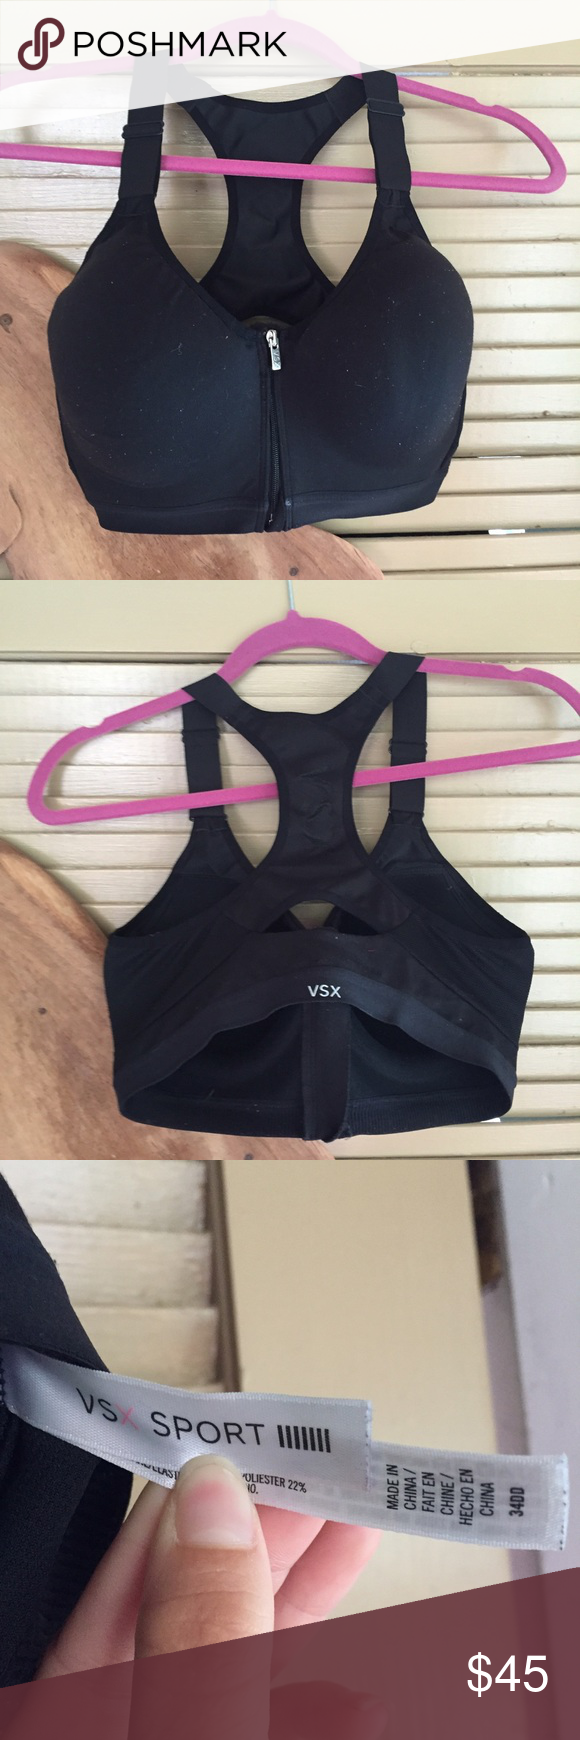 VS Sports Bra 34DD padded sports bra. Front zipper closure. Bought it to use as a nursing bra but never got the chance to use it. It has been through the wash already. Victoria's Secret Intimates & Sleepwear Bras